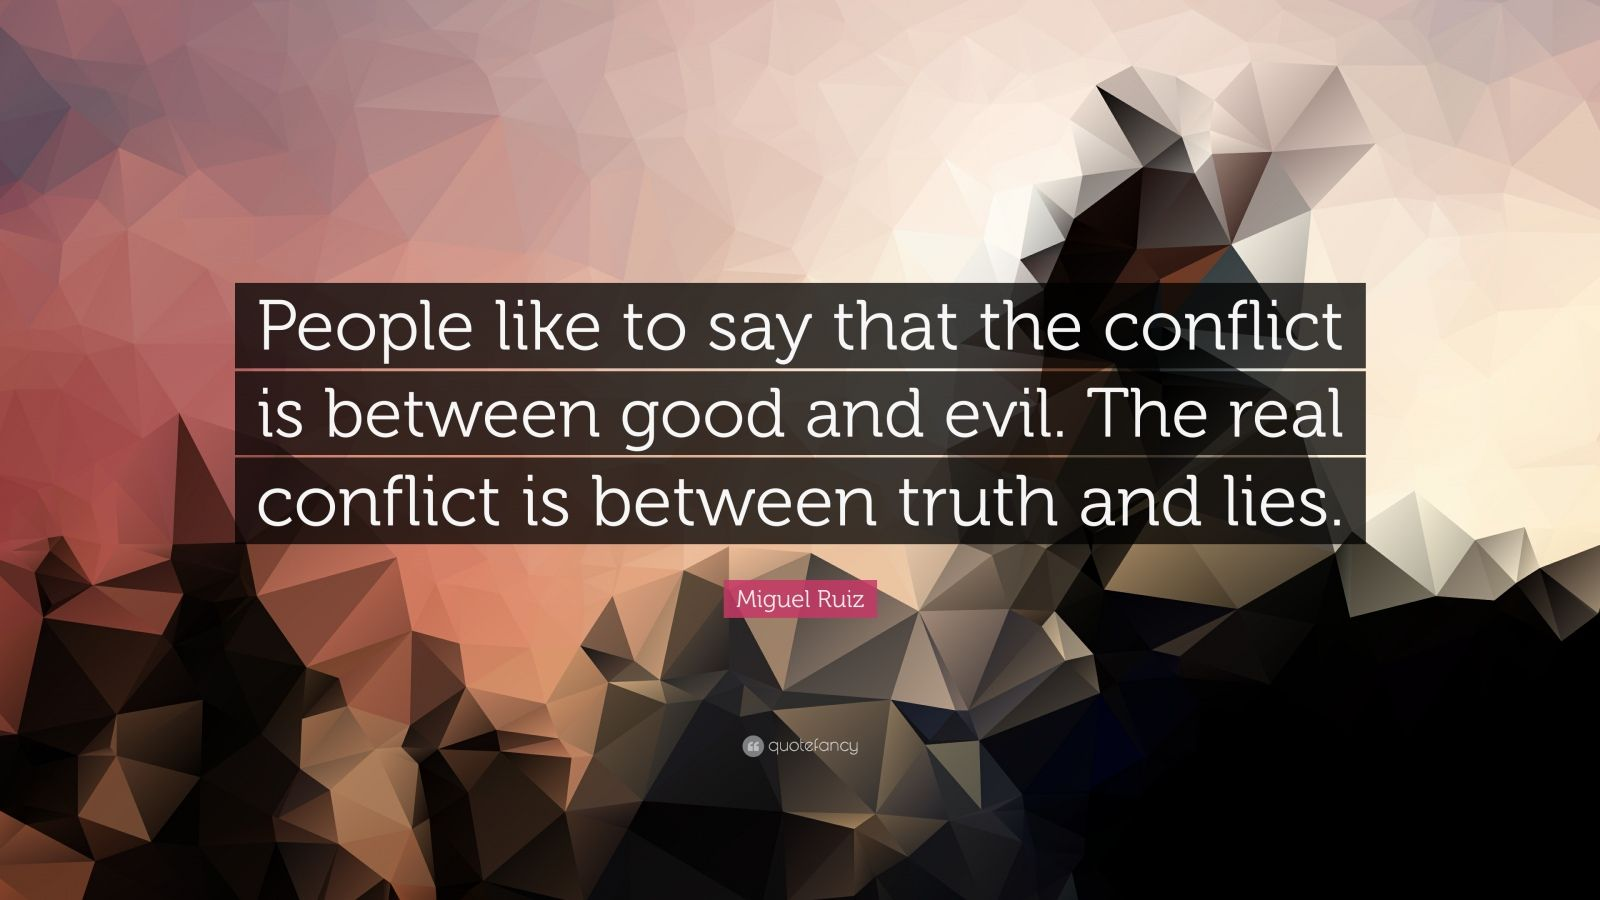 an analysis of conflict between god and evil Definitions of evil vary, as does the analysis of religion as well in the conflict between struggle between good and evil was supposed.